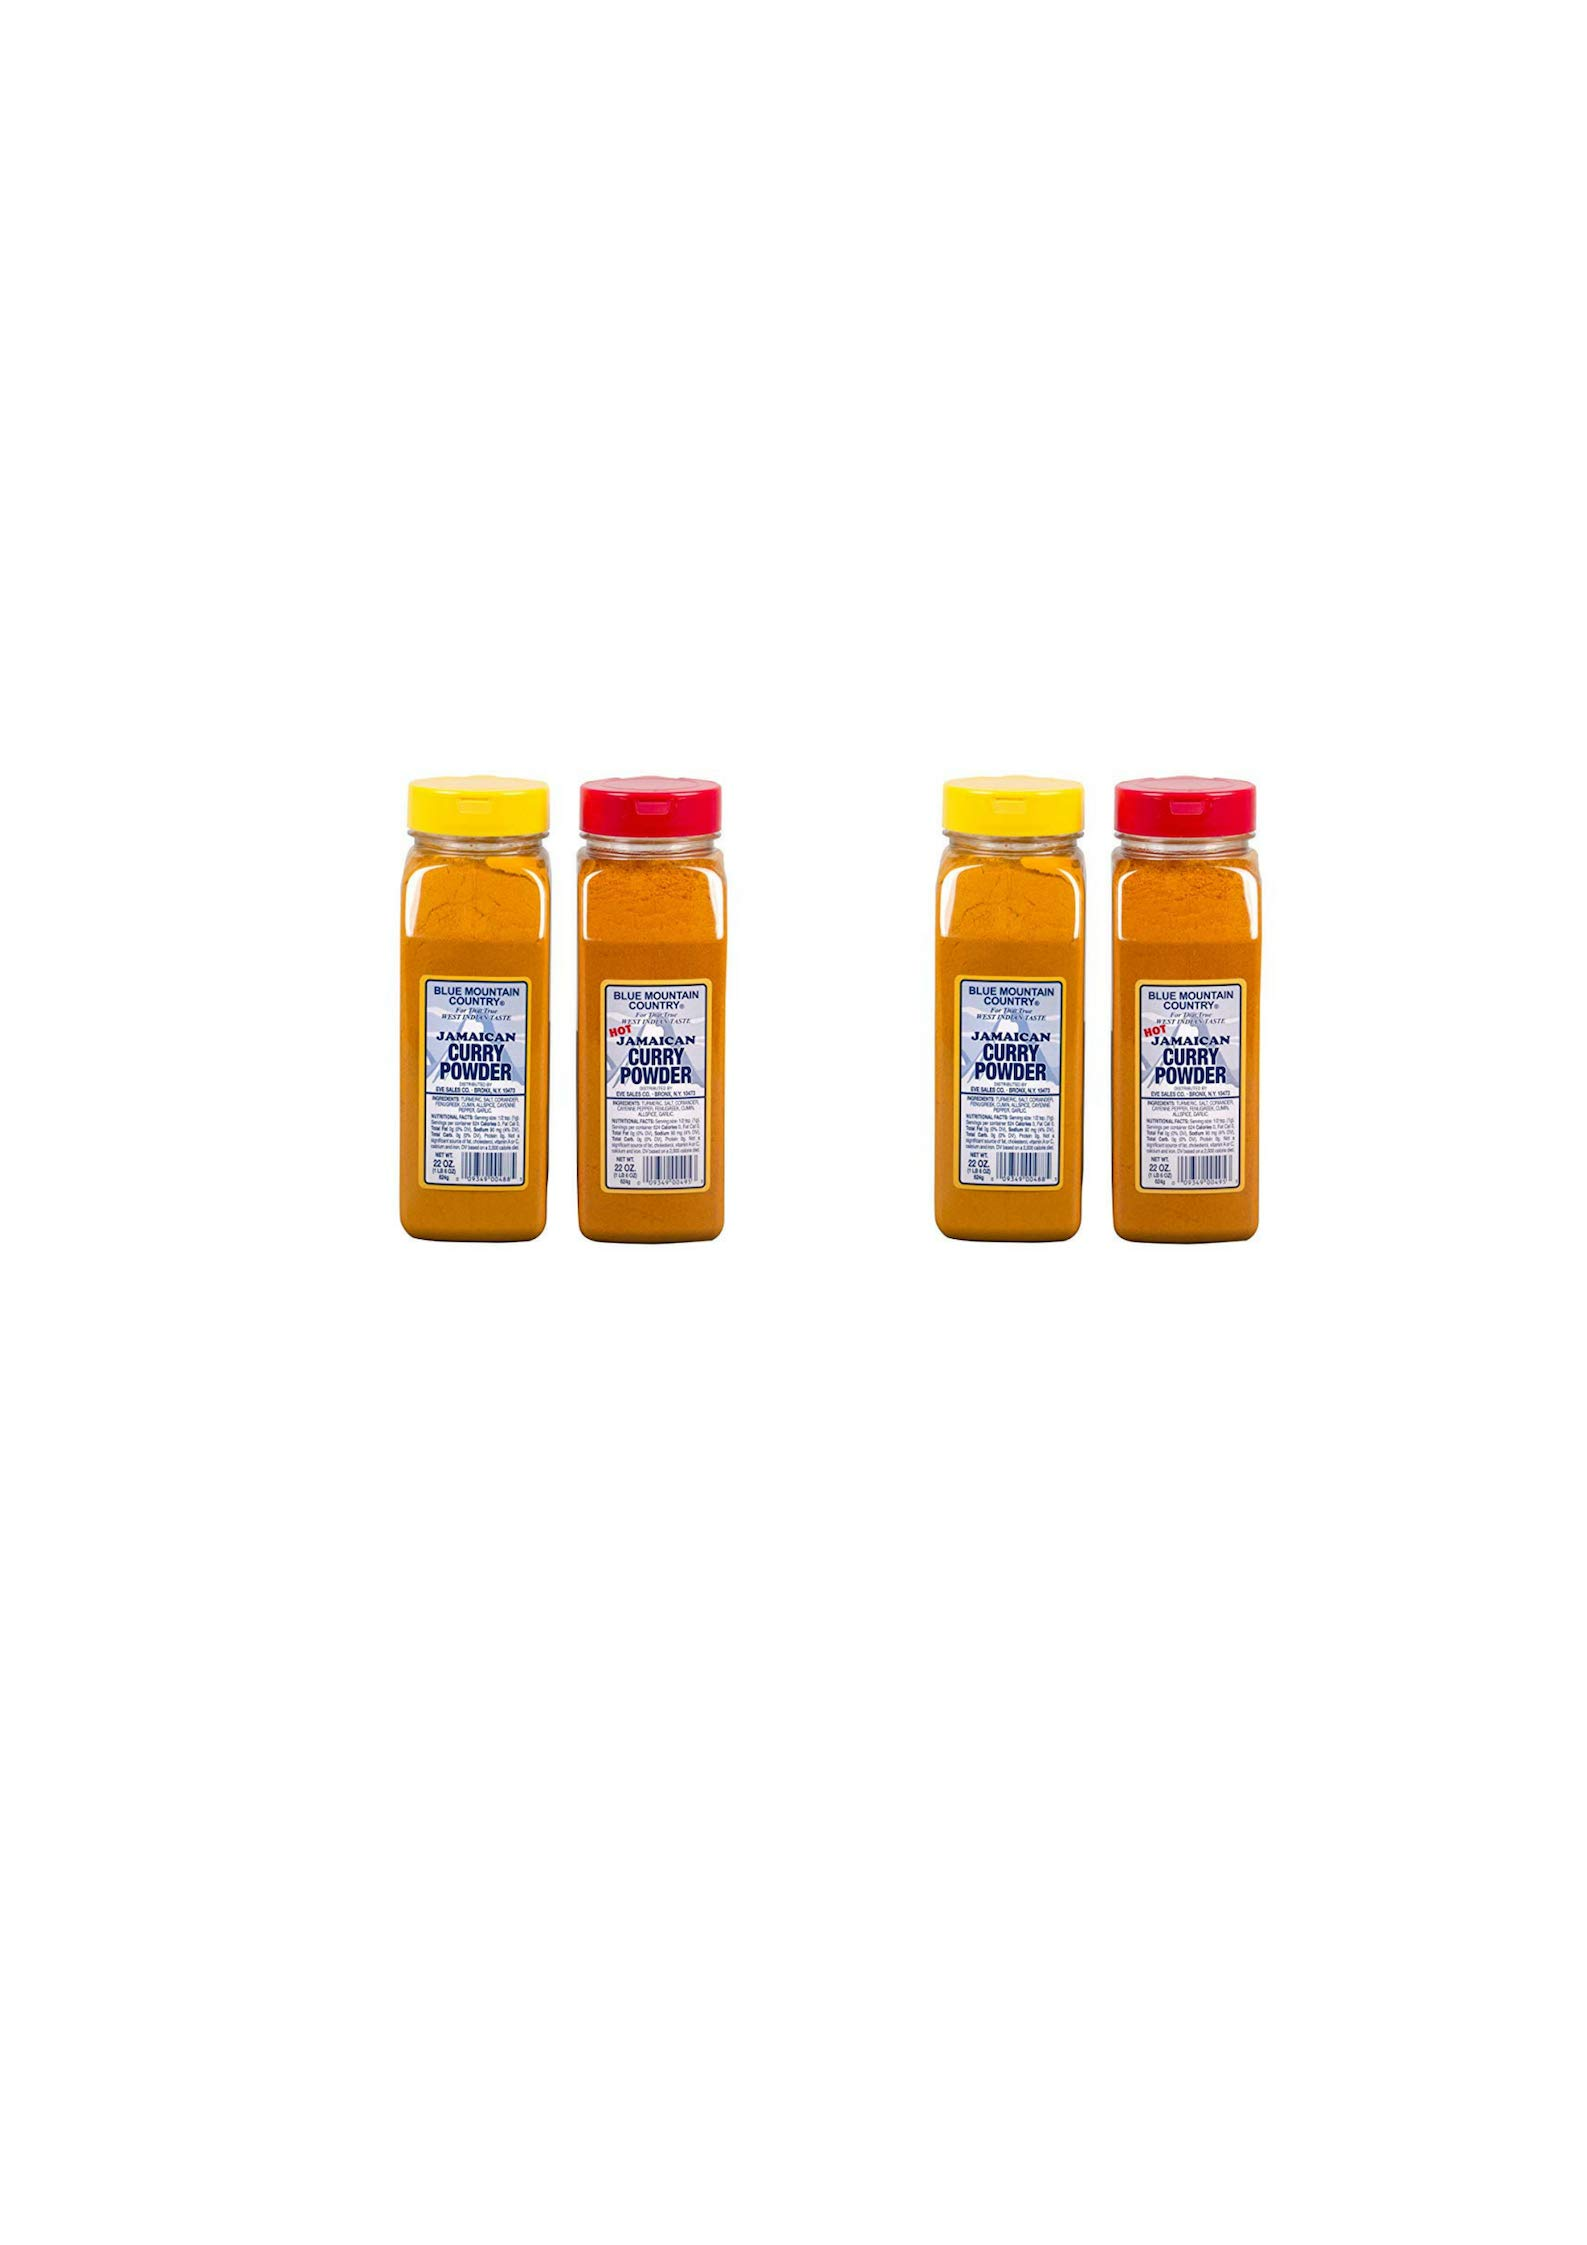 Blue Mountain Country Jamaican Curry and Hot Curry Powder, 22 ounce (Pack of 2) (4 pack)